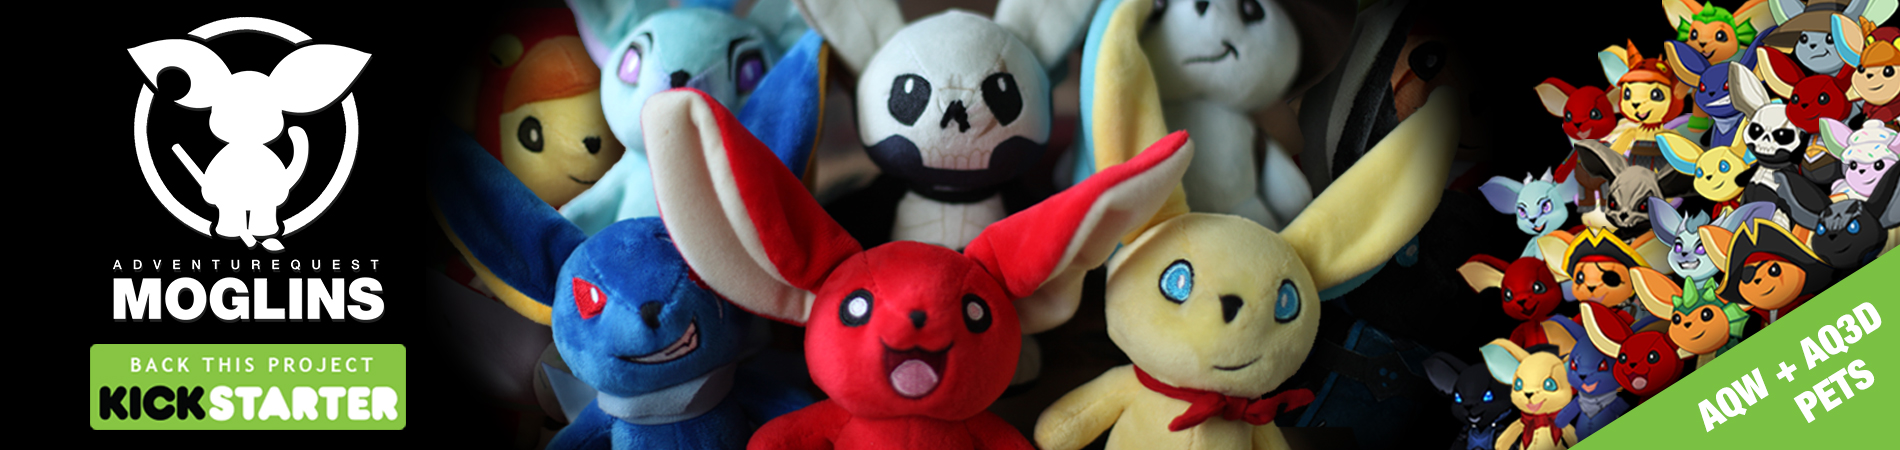 Help bring Moglins to Real Life!